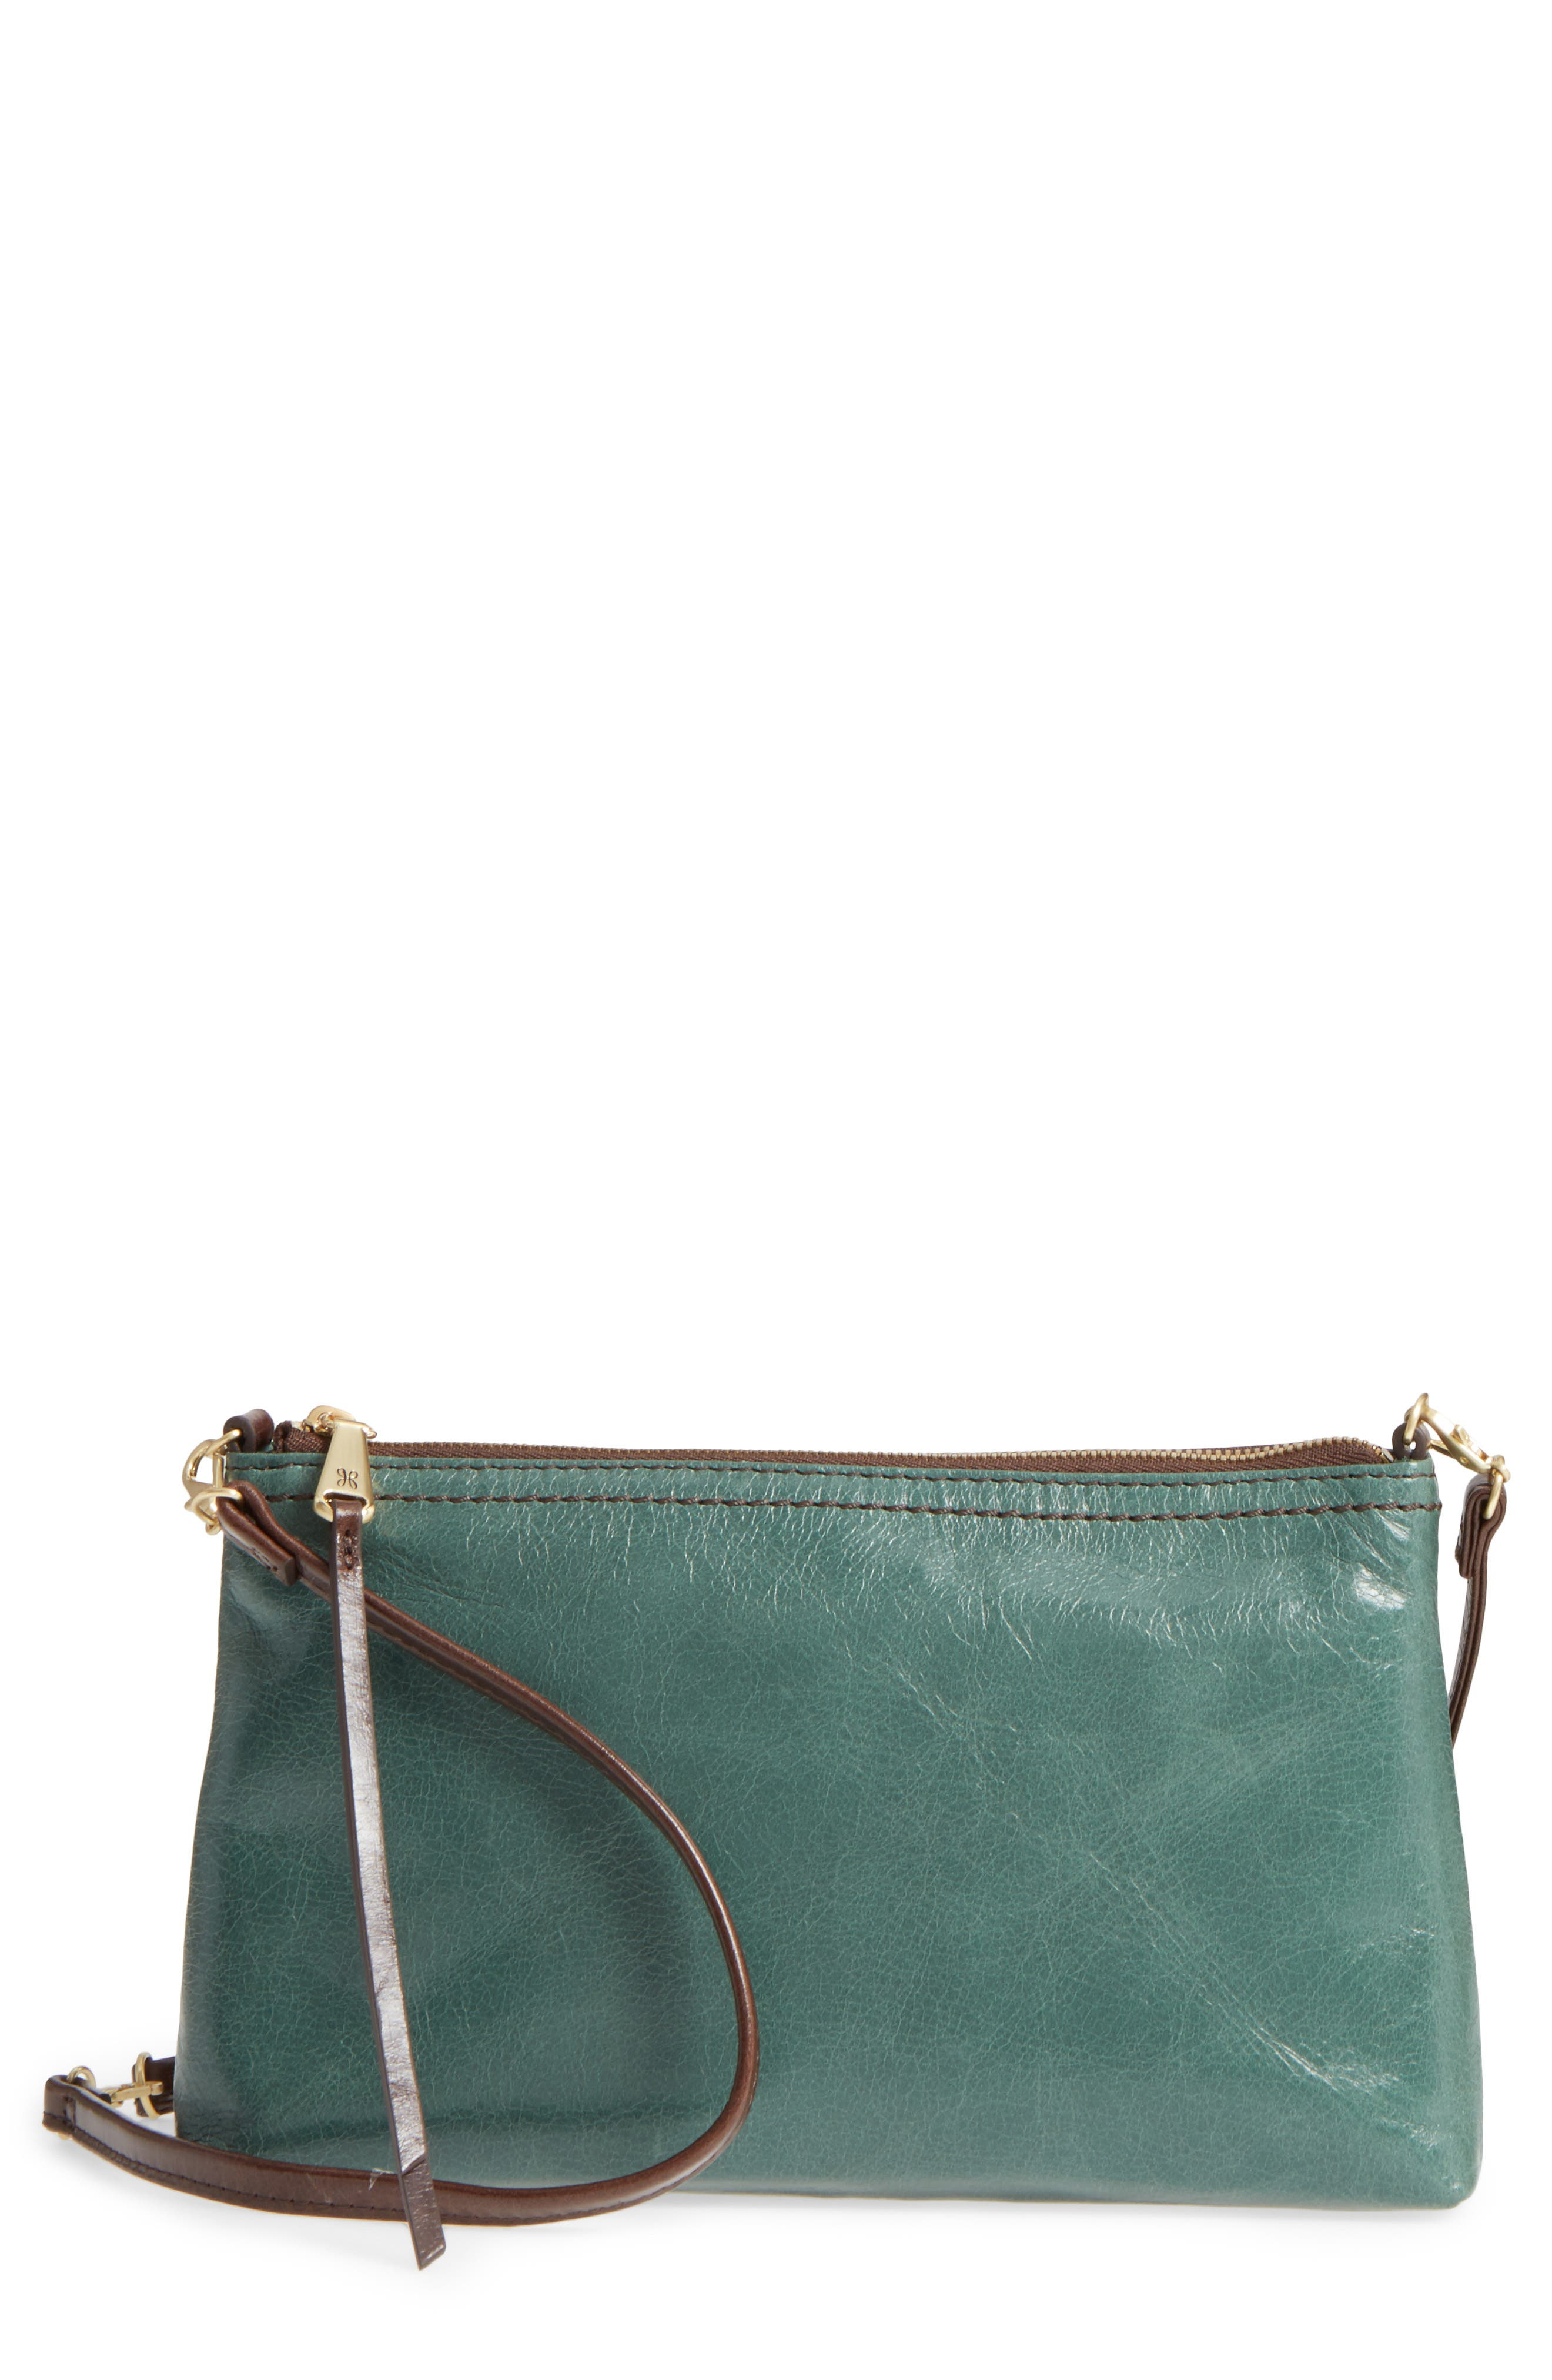 Hobo 'Darcy' Leather Crossbody Bag